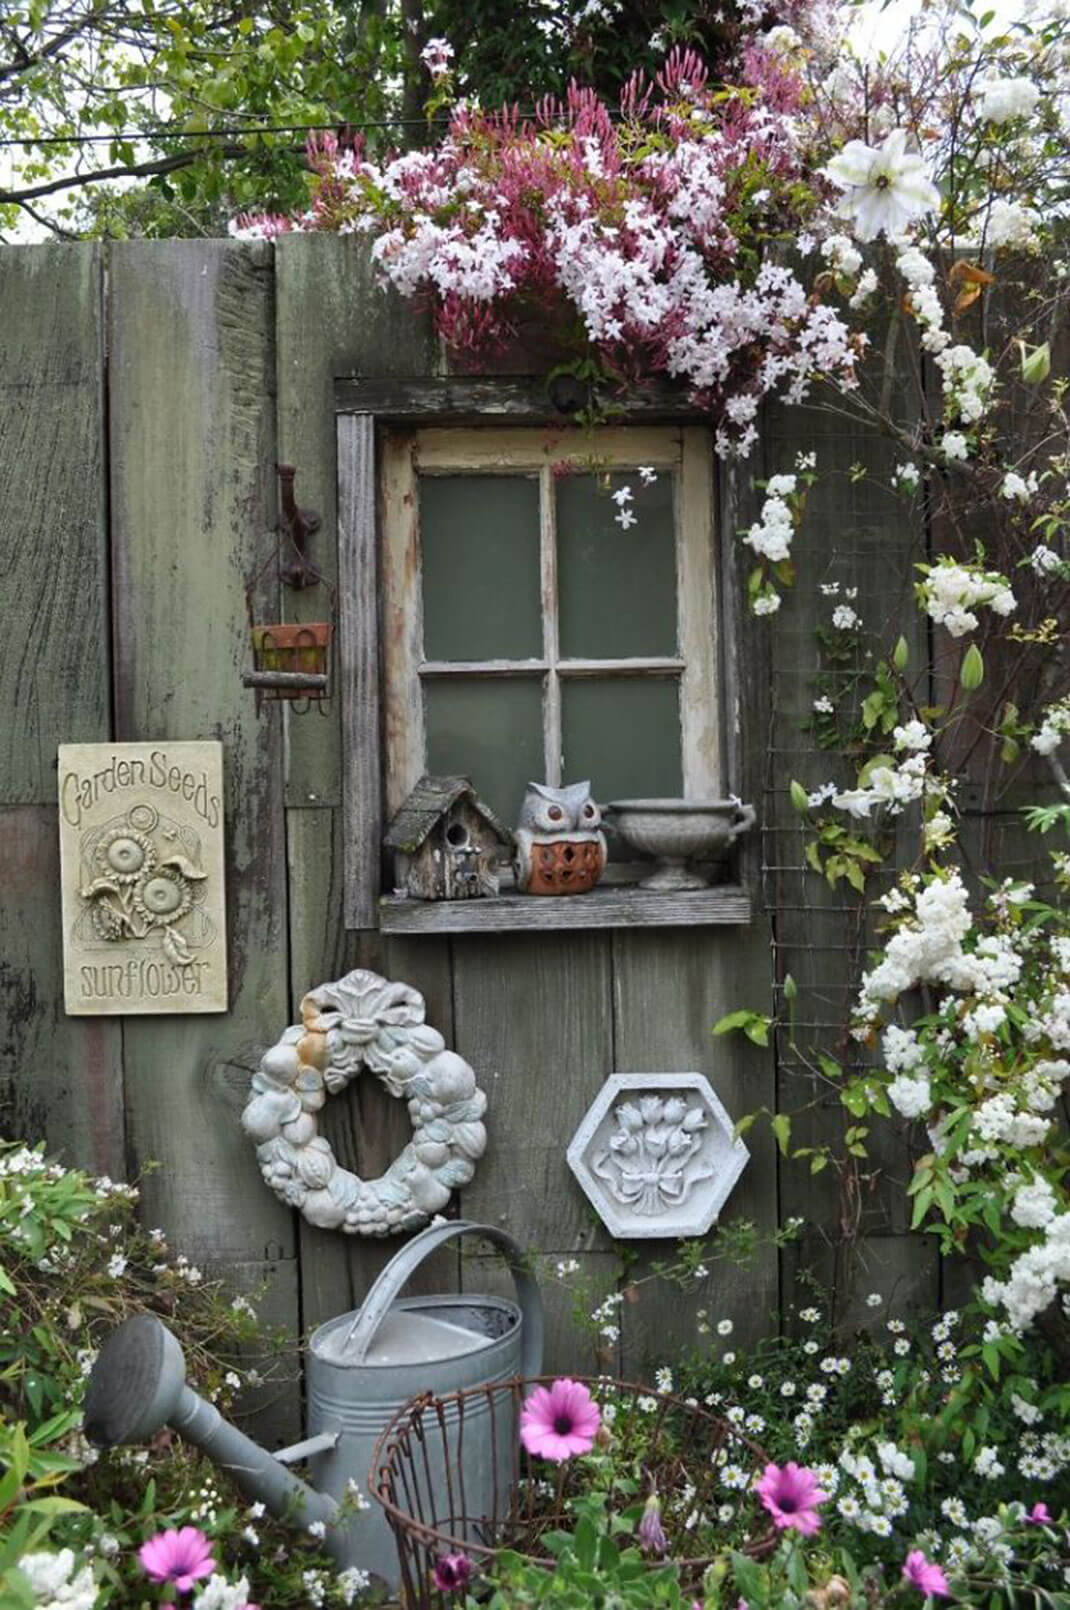 Garden Window Scene with Cute Owl Statue